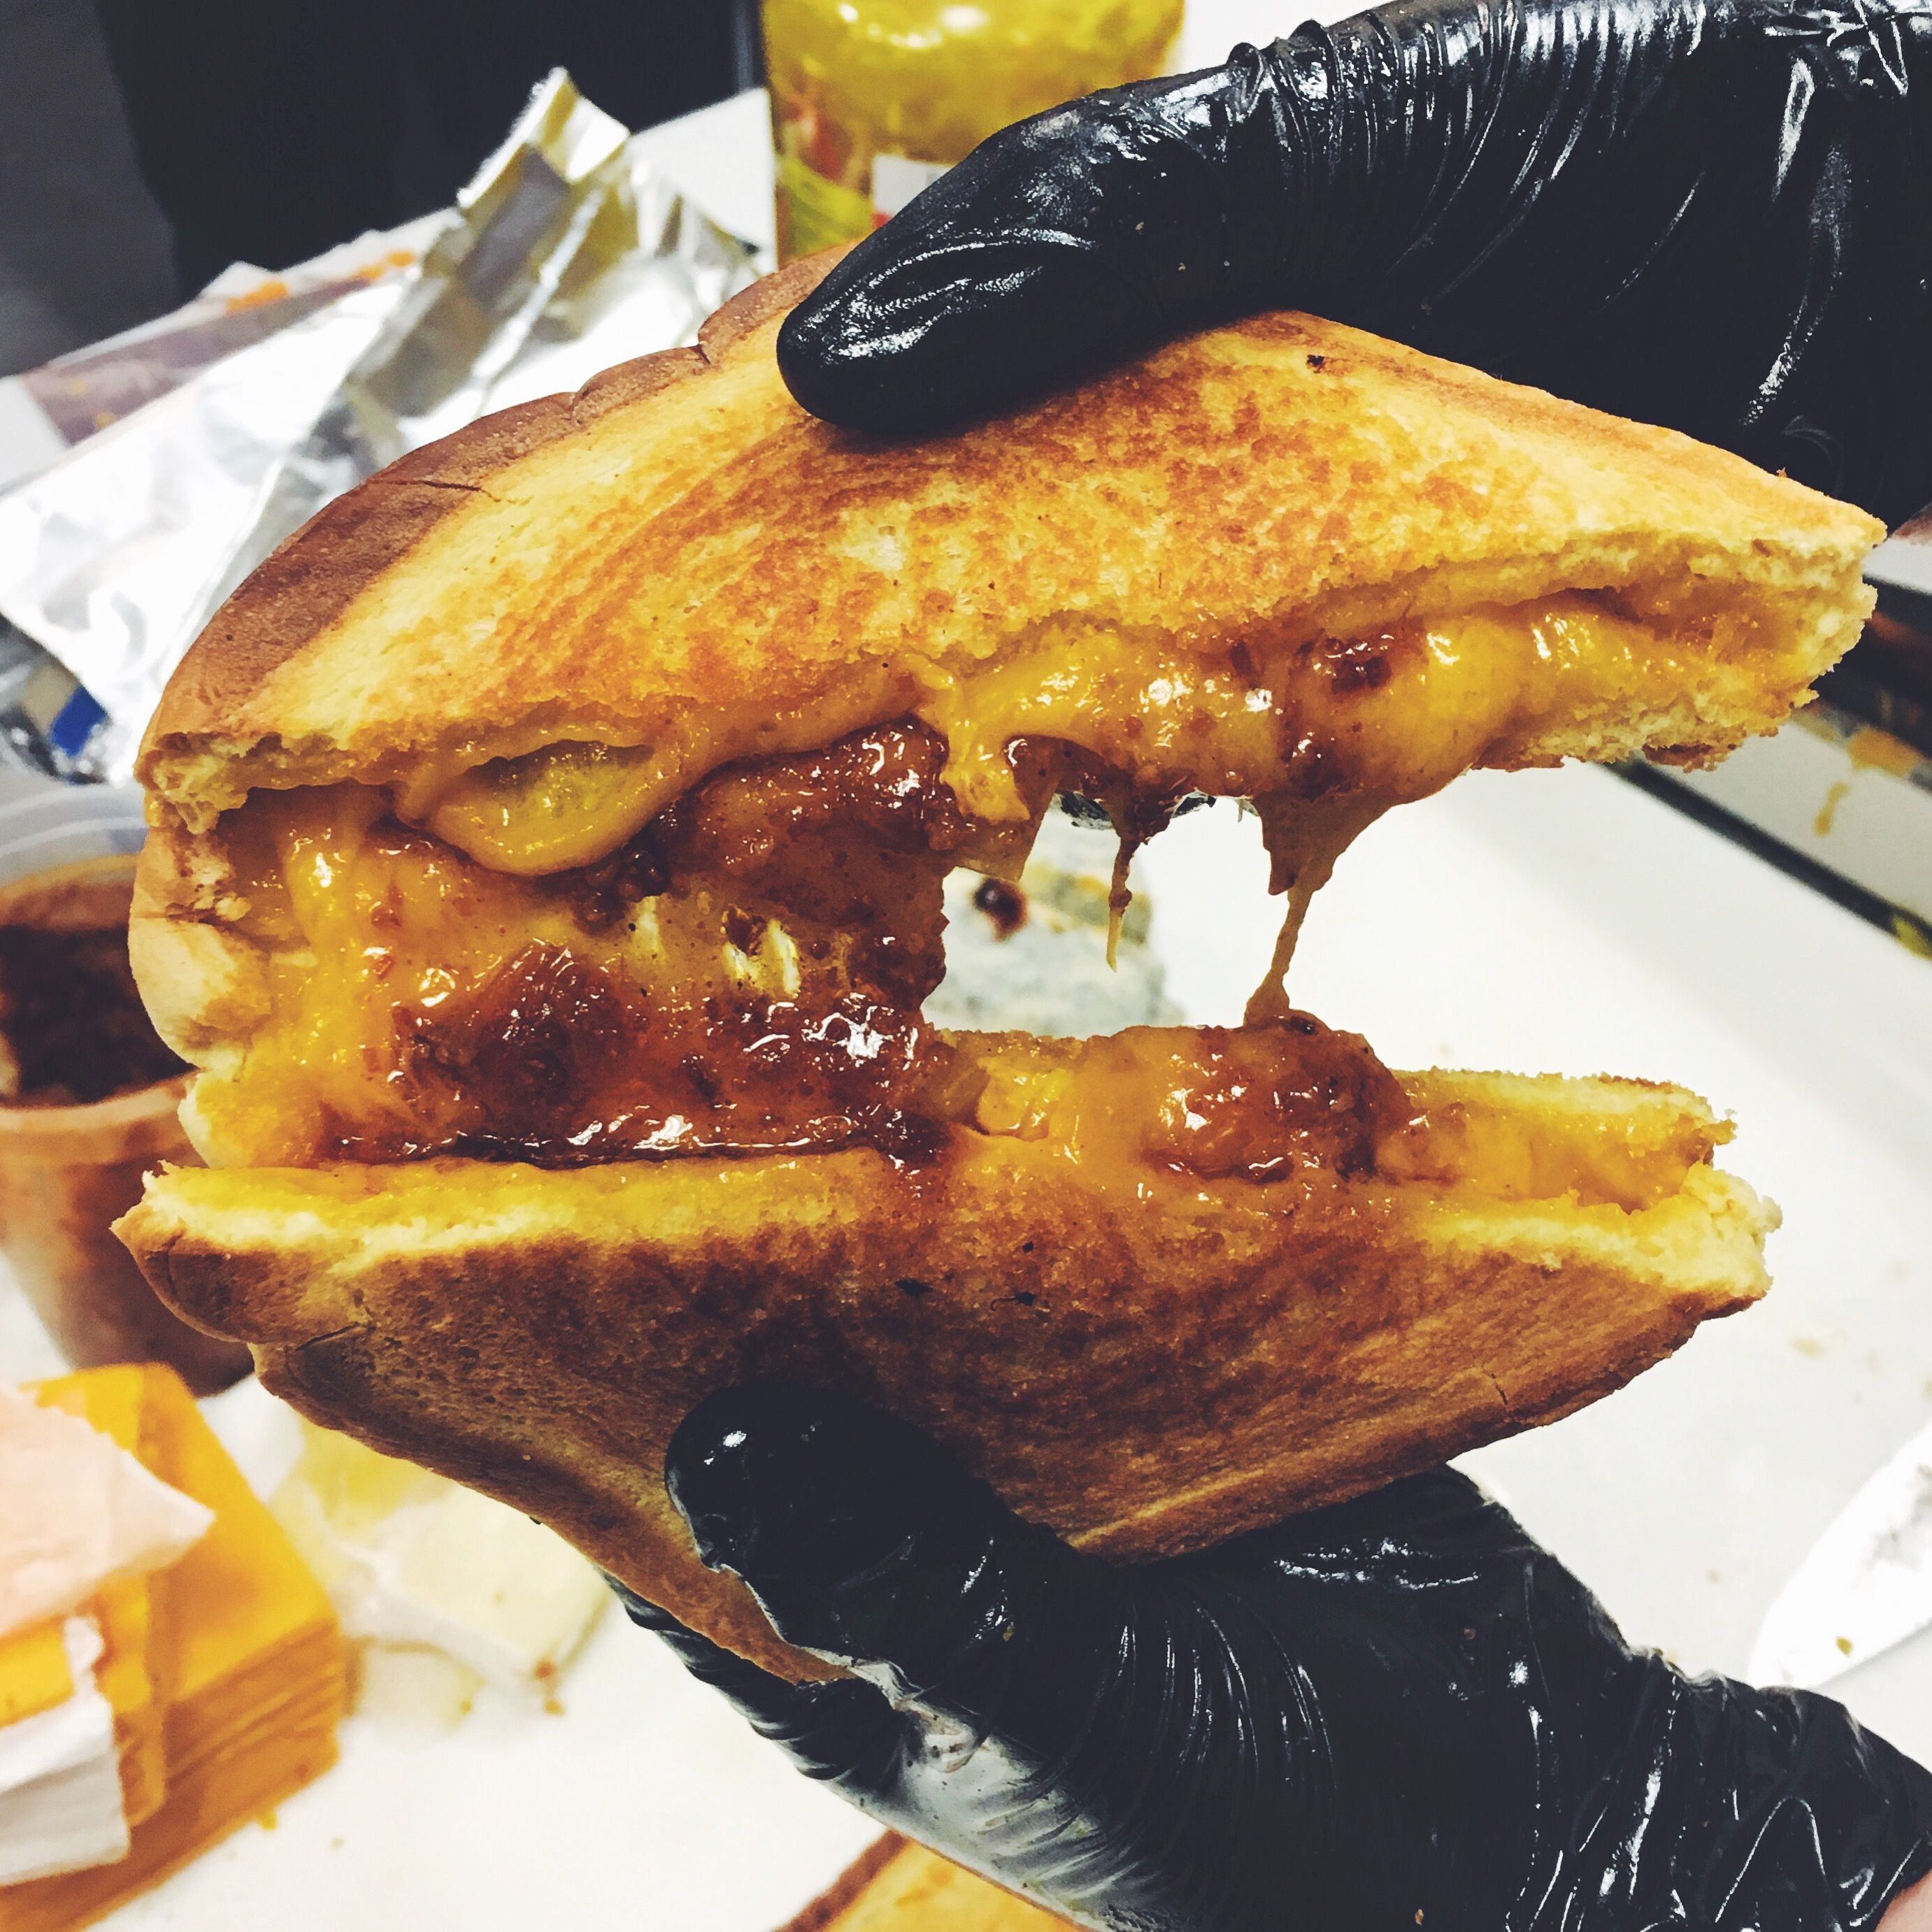 Sweet and Savory Wisconsin Cheese Grilled Cheese